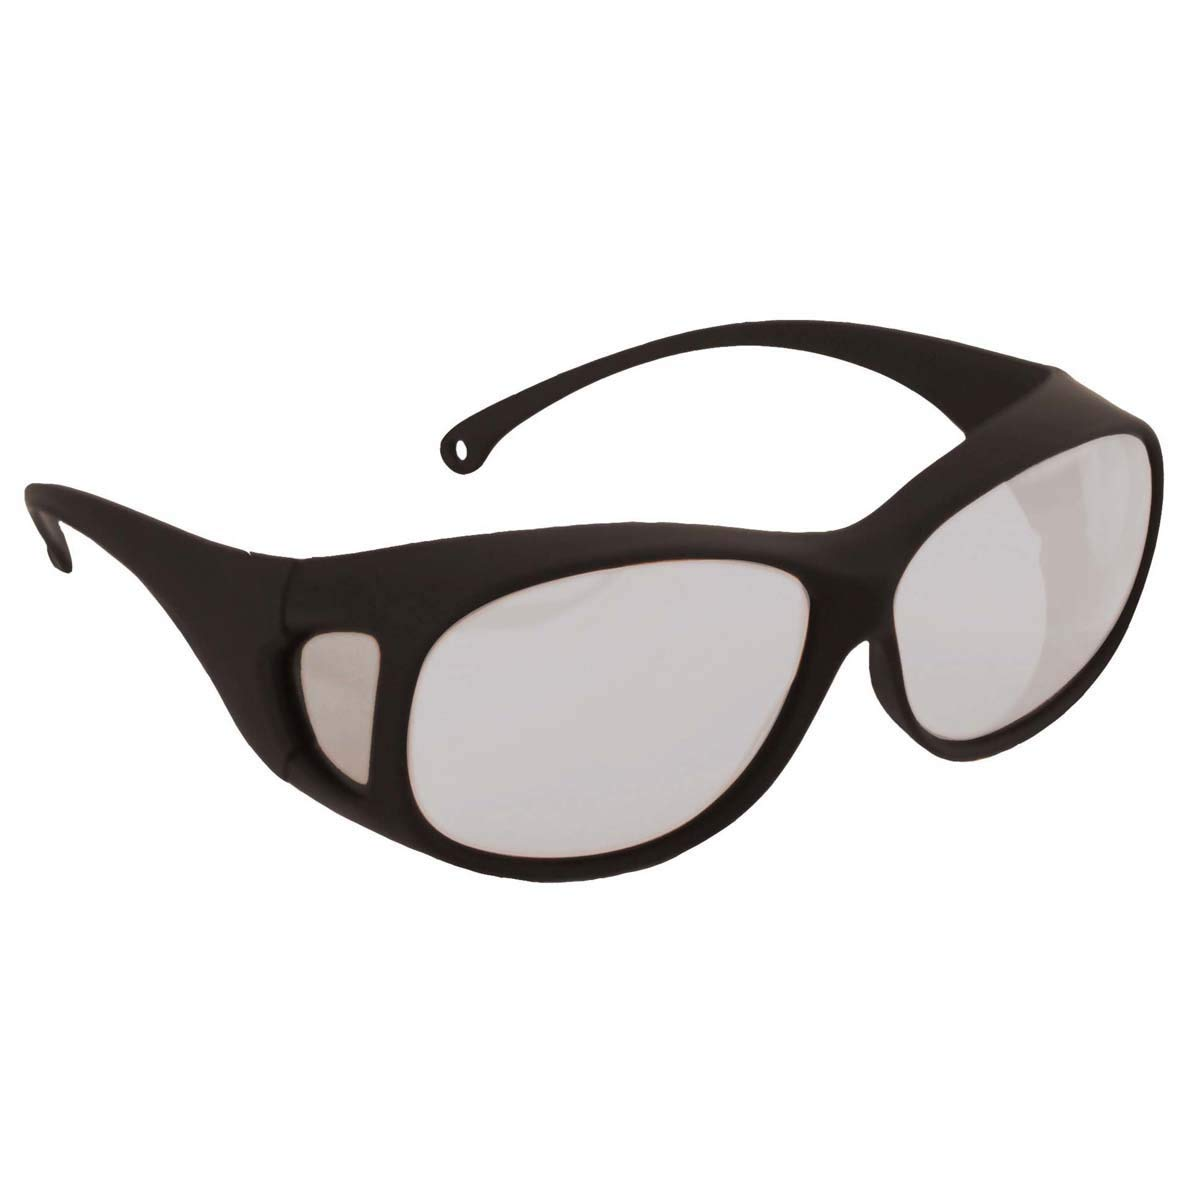 Kimberly-Clark Professional Jackson Safety OTG Black Safety Glasses With Clear Indoor-Outdoor/Hard Coat Lens - 432 Each/Pallet